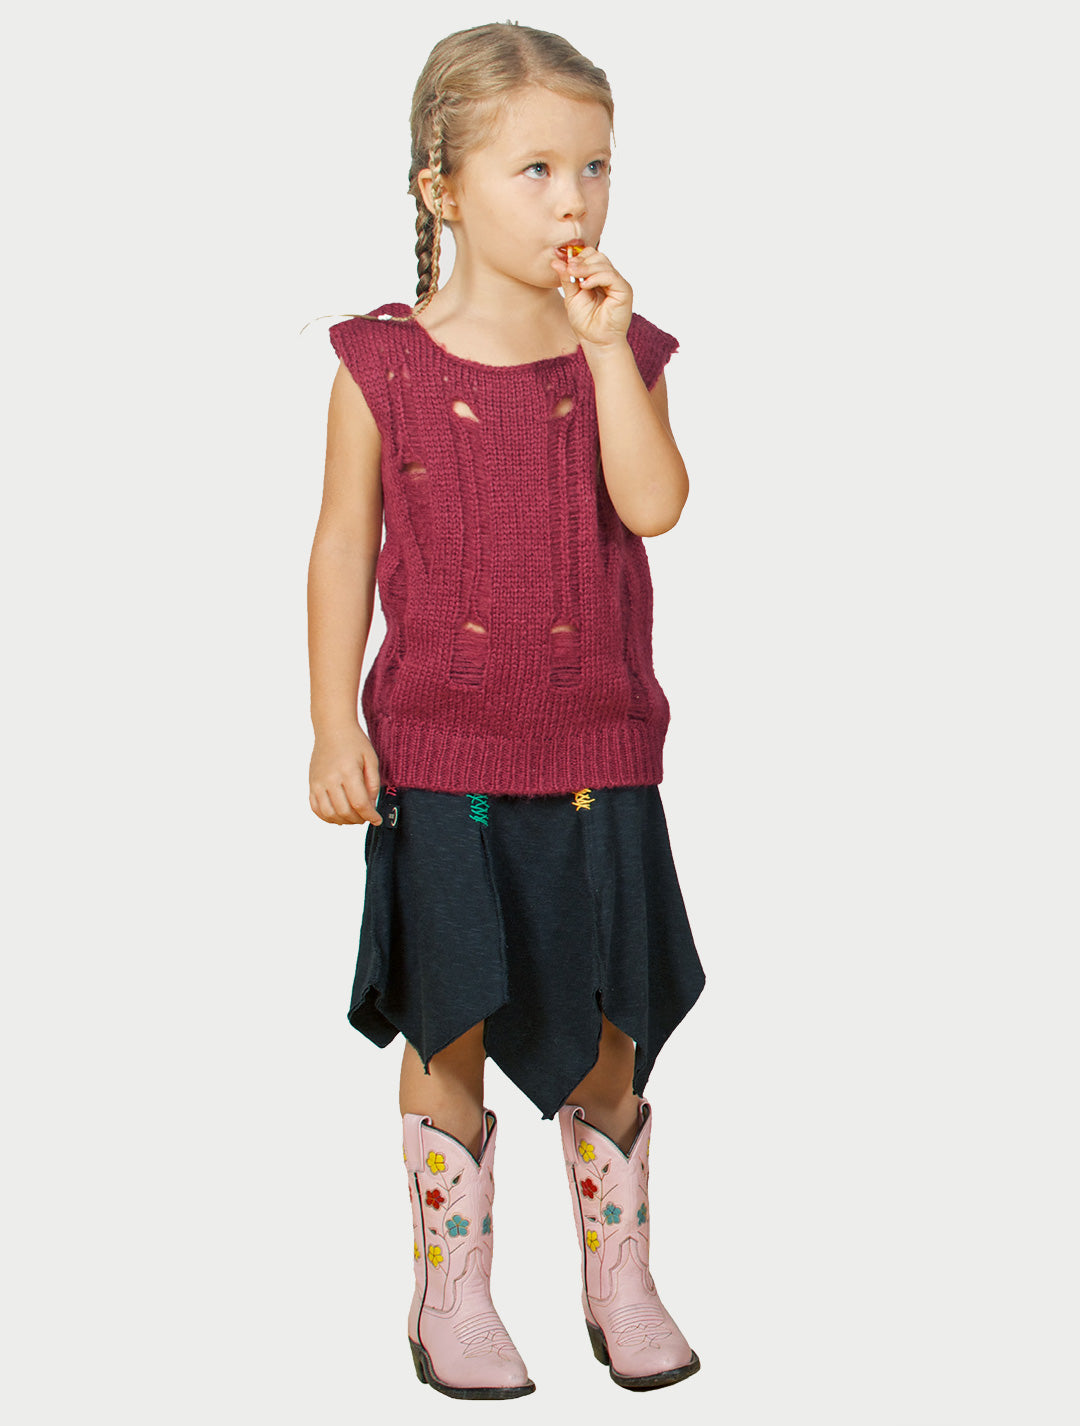 Mish Vest (Kids) - Psylo Fashion